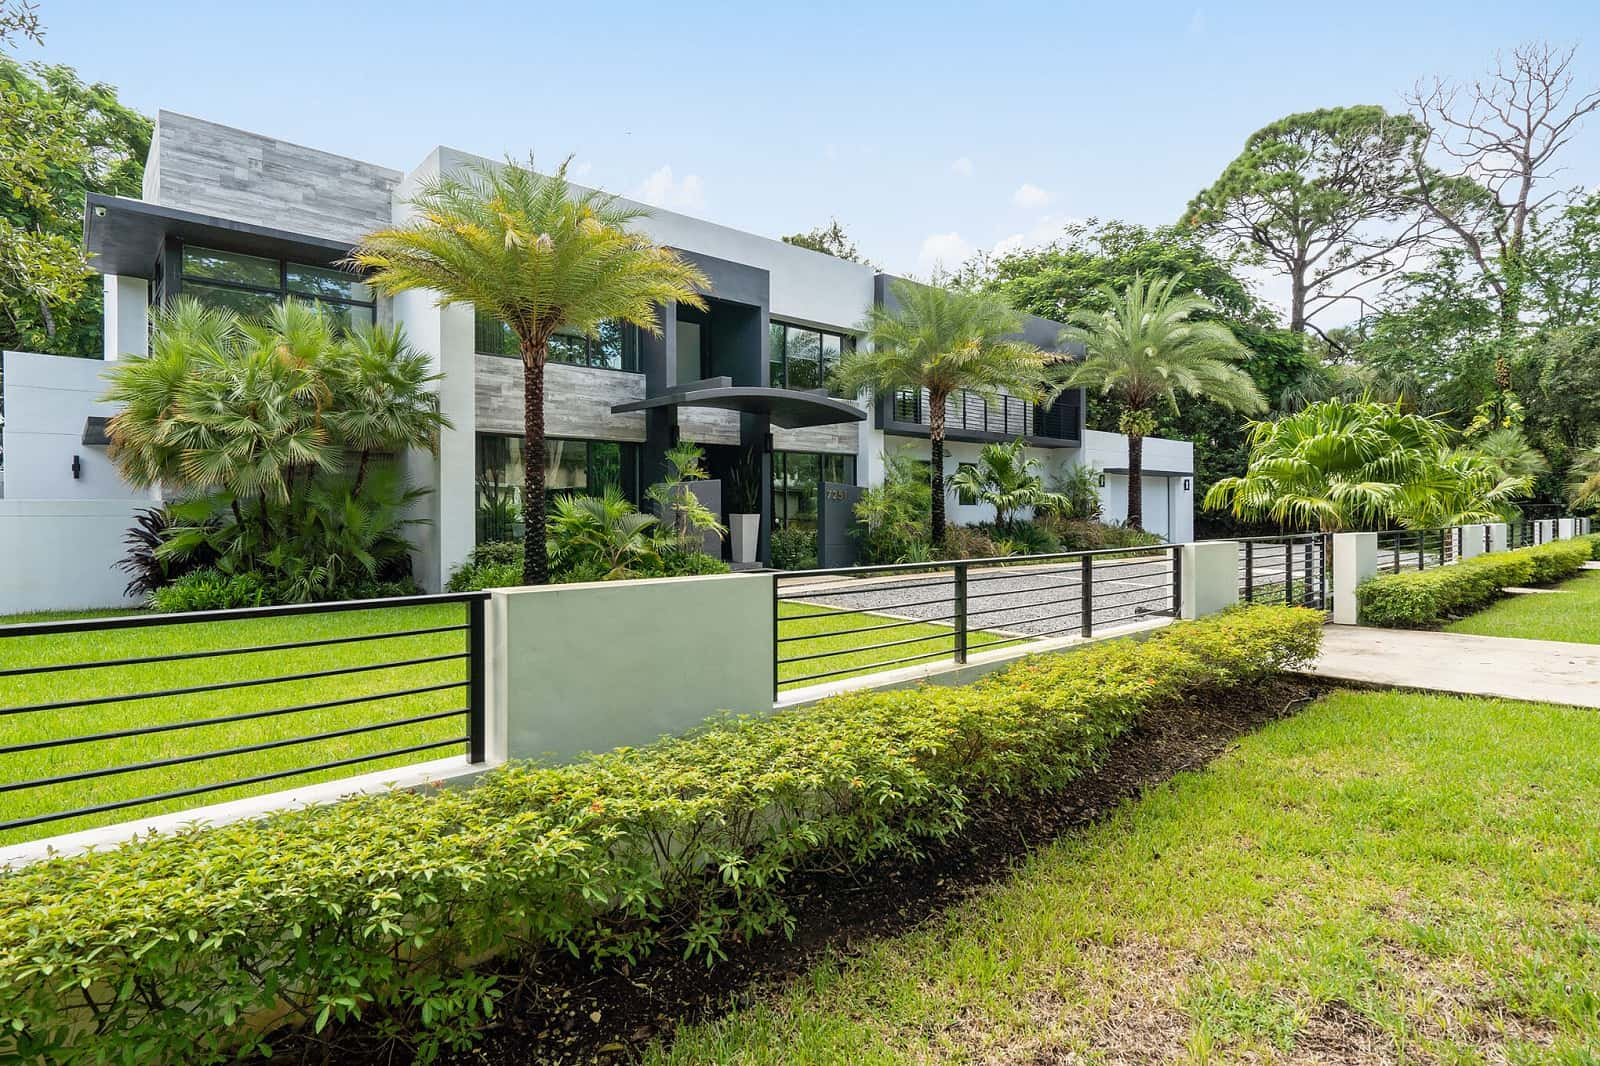 Real Estate Photography in Miami - FL - USA - Front View